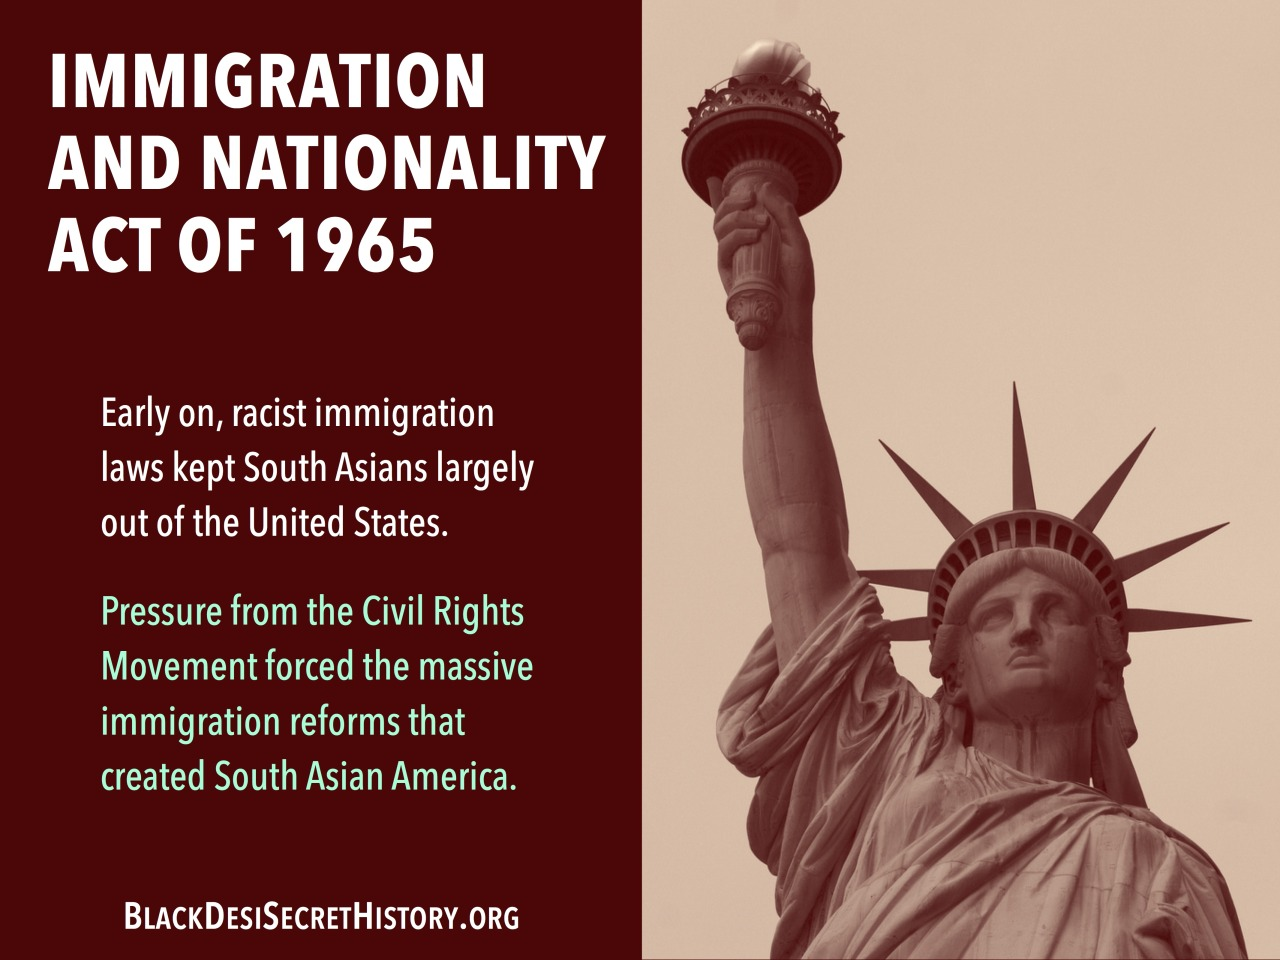 IMMIGRATION AND NATIONALITY ACT OF 1965: Early on, racist immigration laws kept South Asians largely out of the United States. Pressure from the Civil Rights Movement forced the massive immigration reforms that created South Asian America.